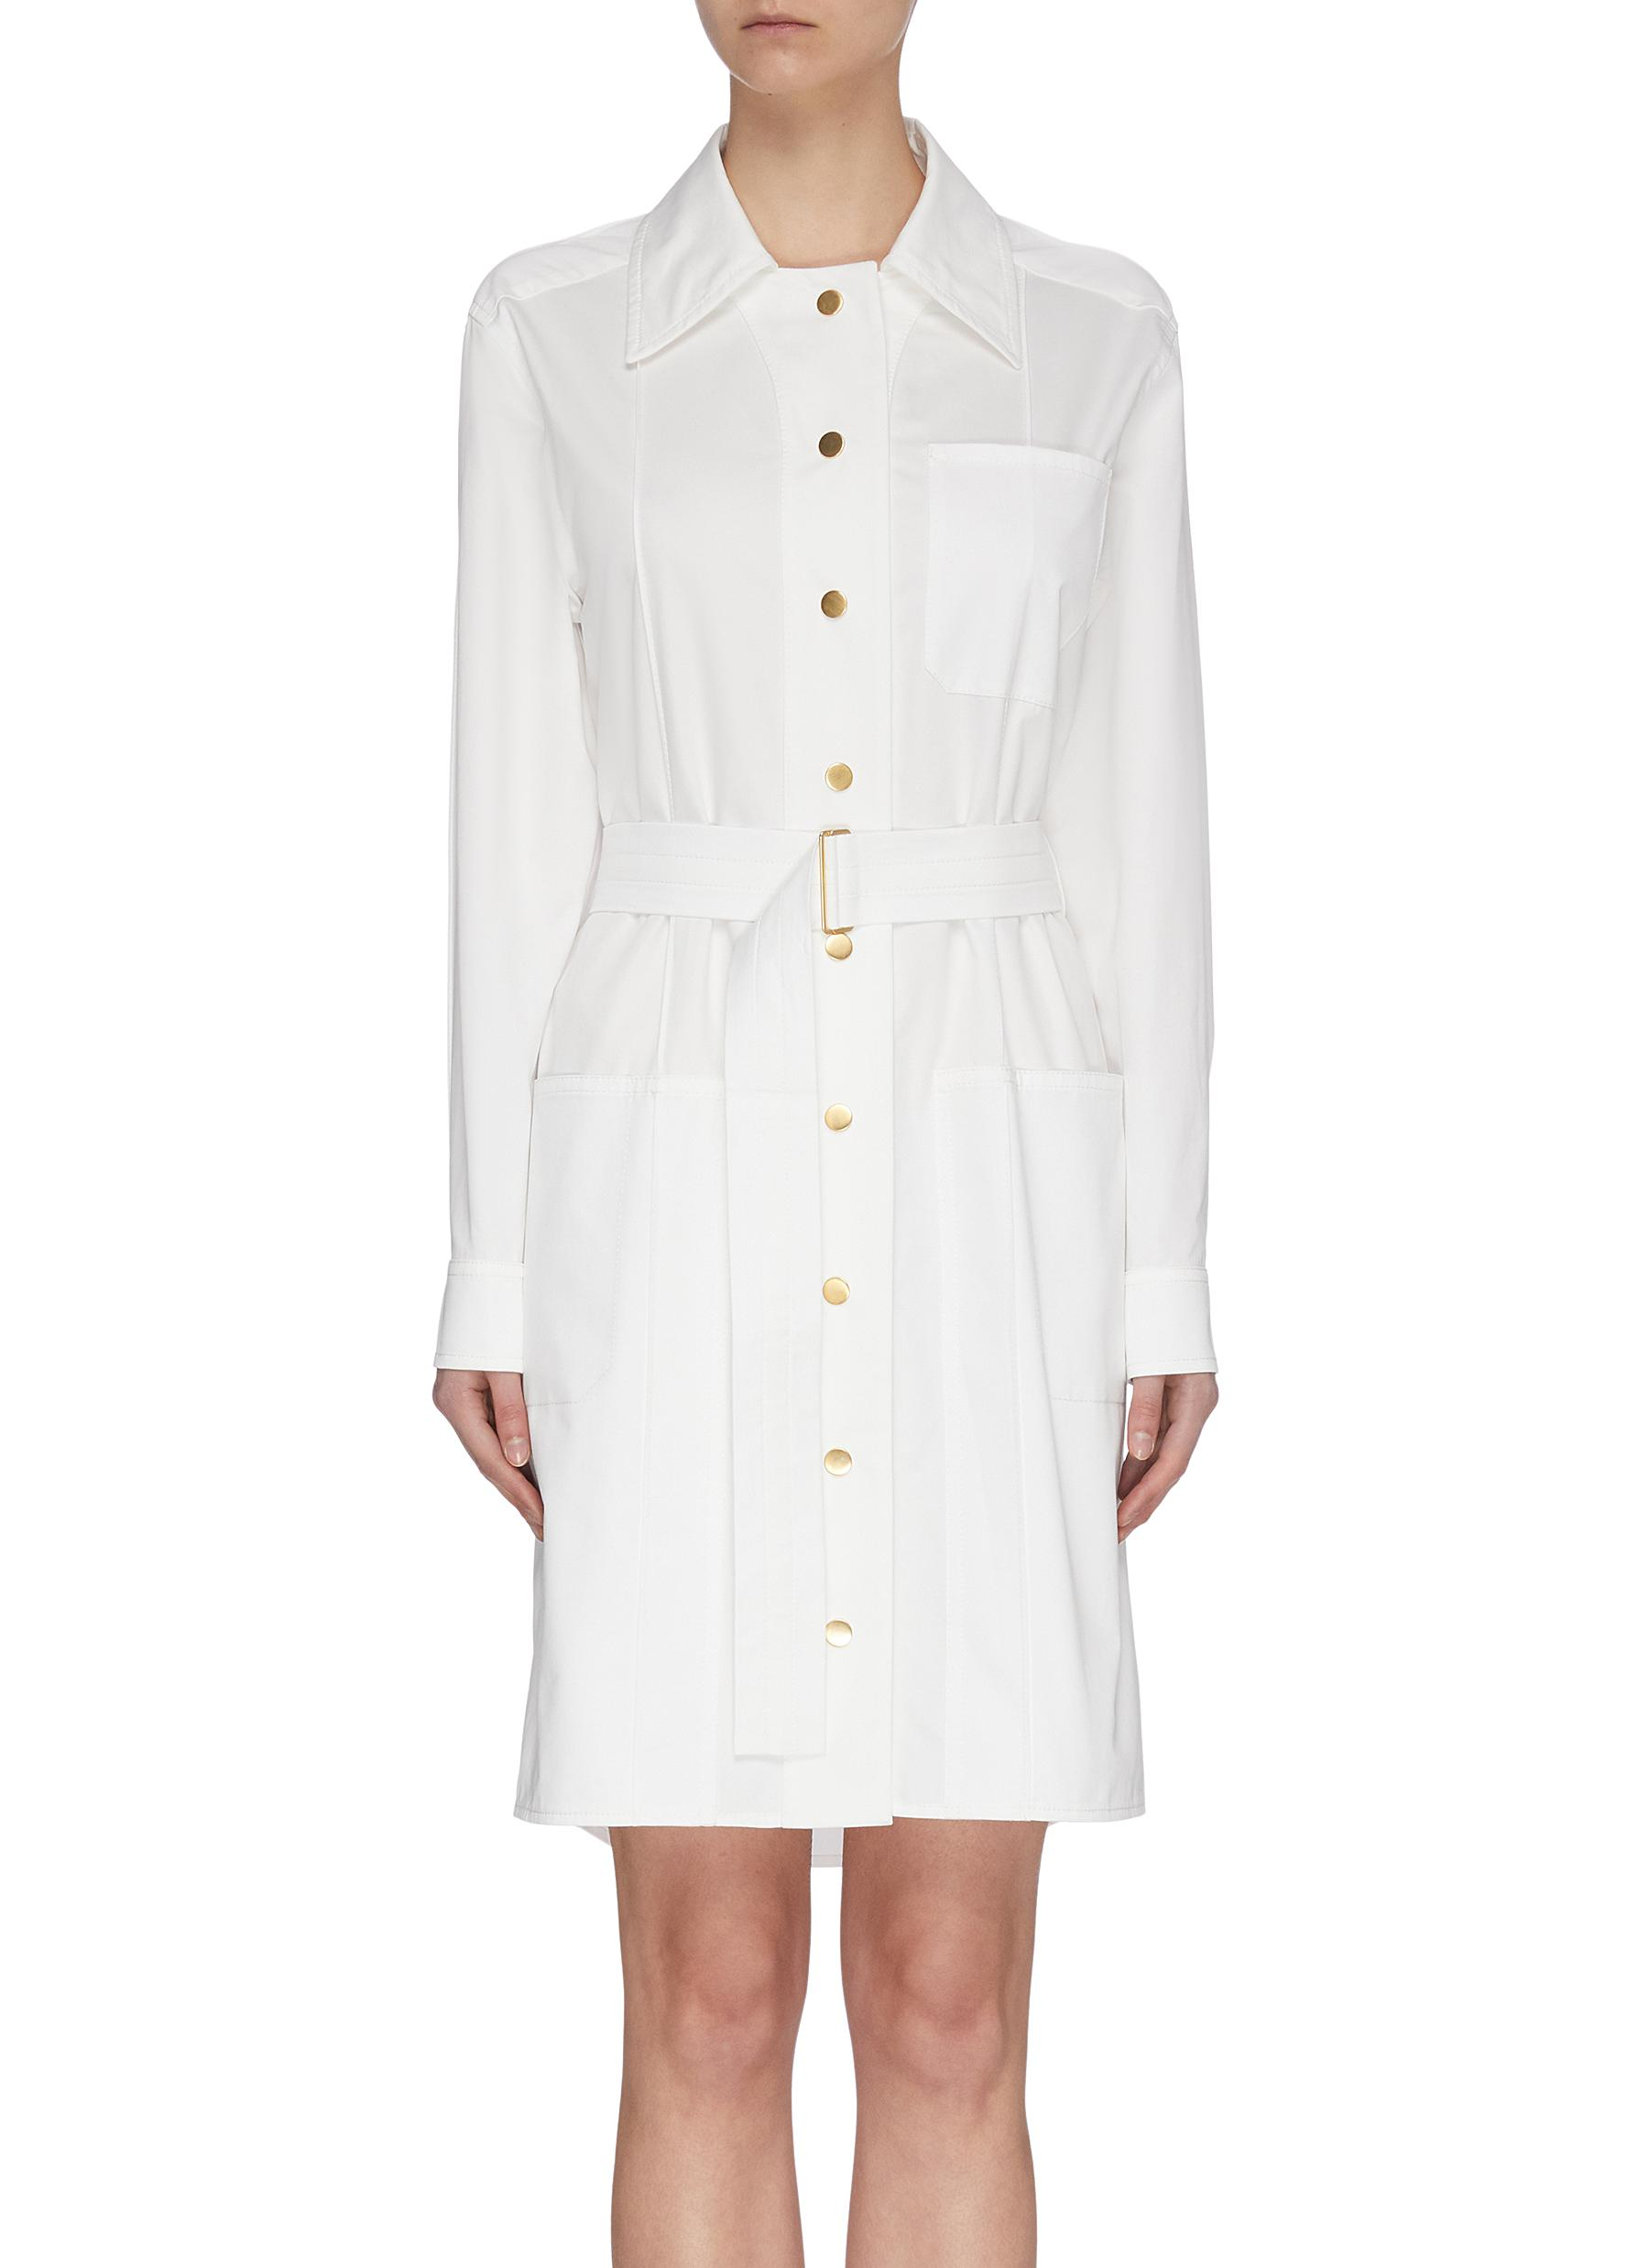 Buy Cédric Charlier Dresses Belted Shirt Dress